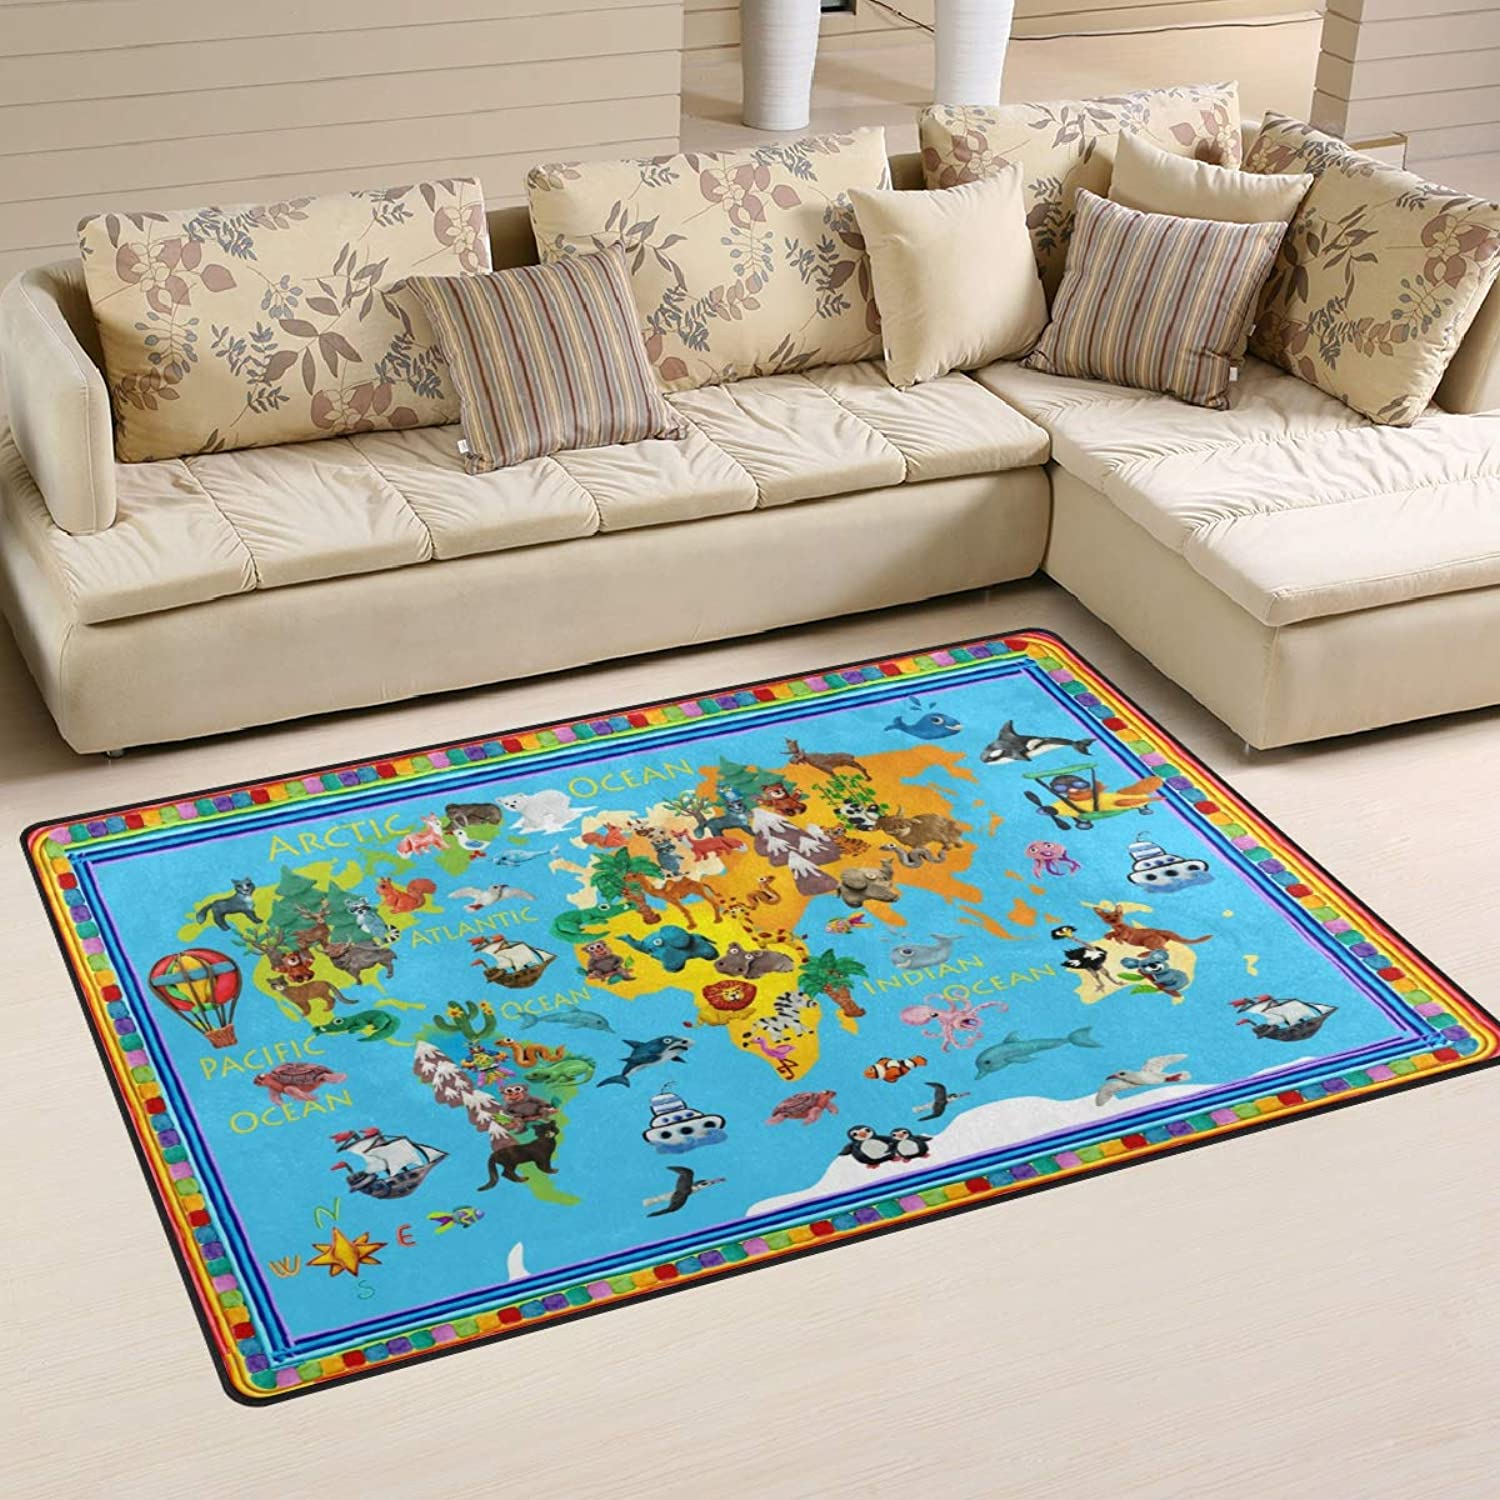 Area Rugs Doormats World Map with Animals Kids 5'x3'3 (60x39 Inches) Non-Slip Floor Mat Soft Carpet for Living Dining Bedroom Home